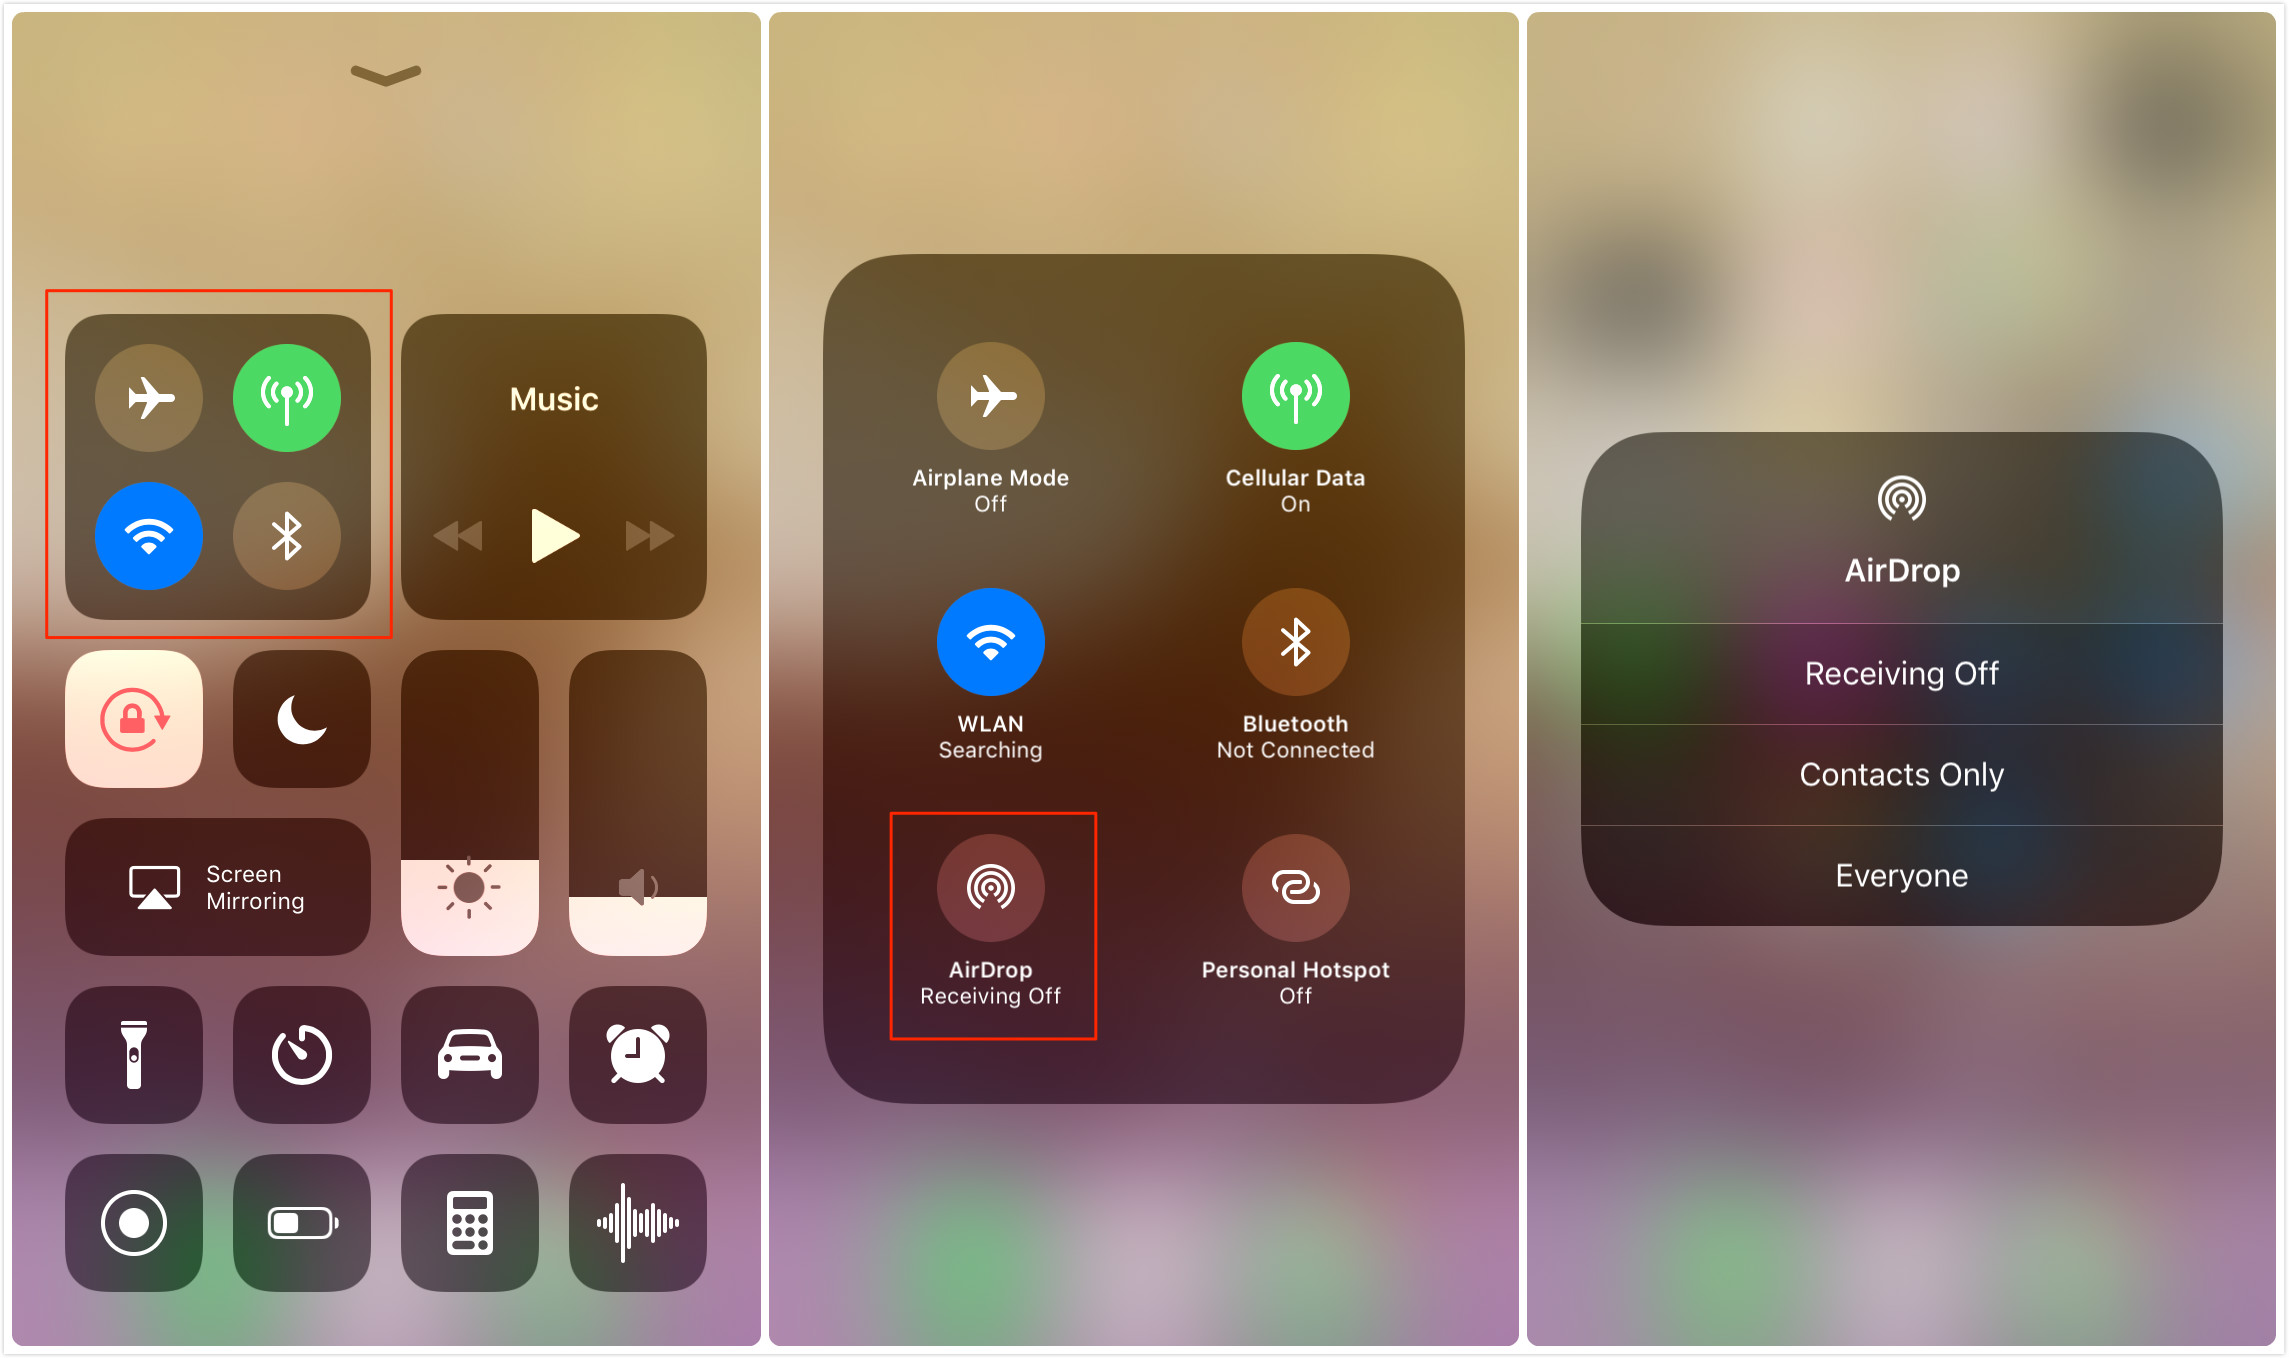 How to Turn on/off AirDrop in Control Center on iOS 11 - Screen Overview